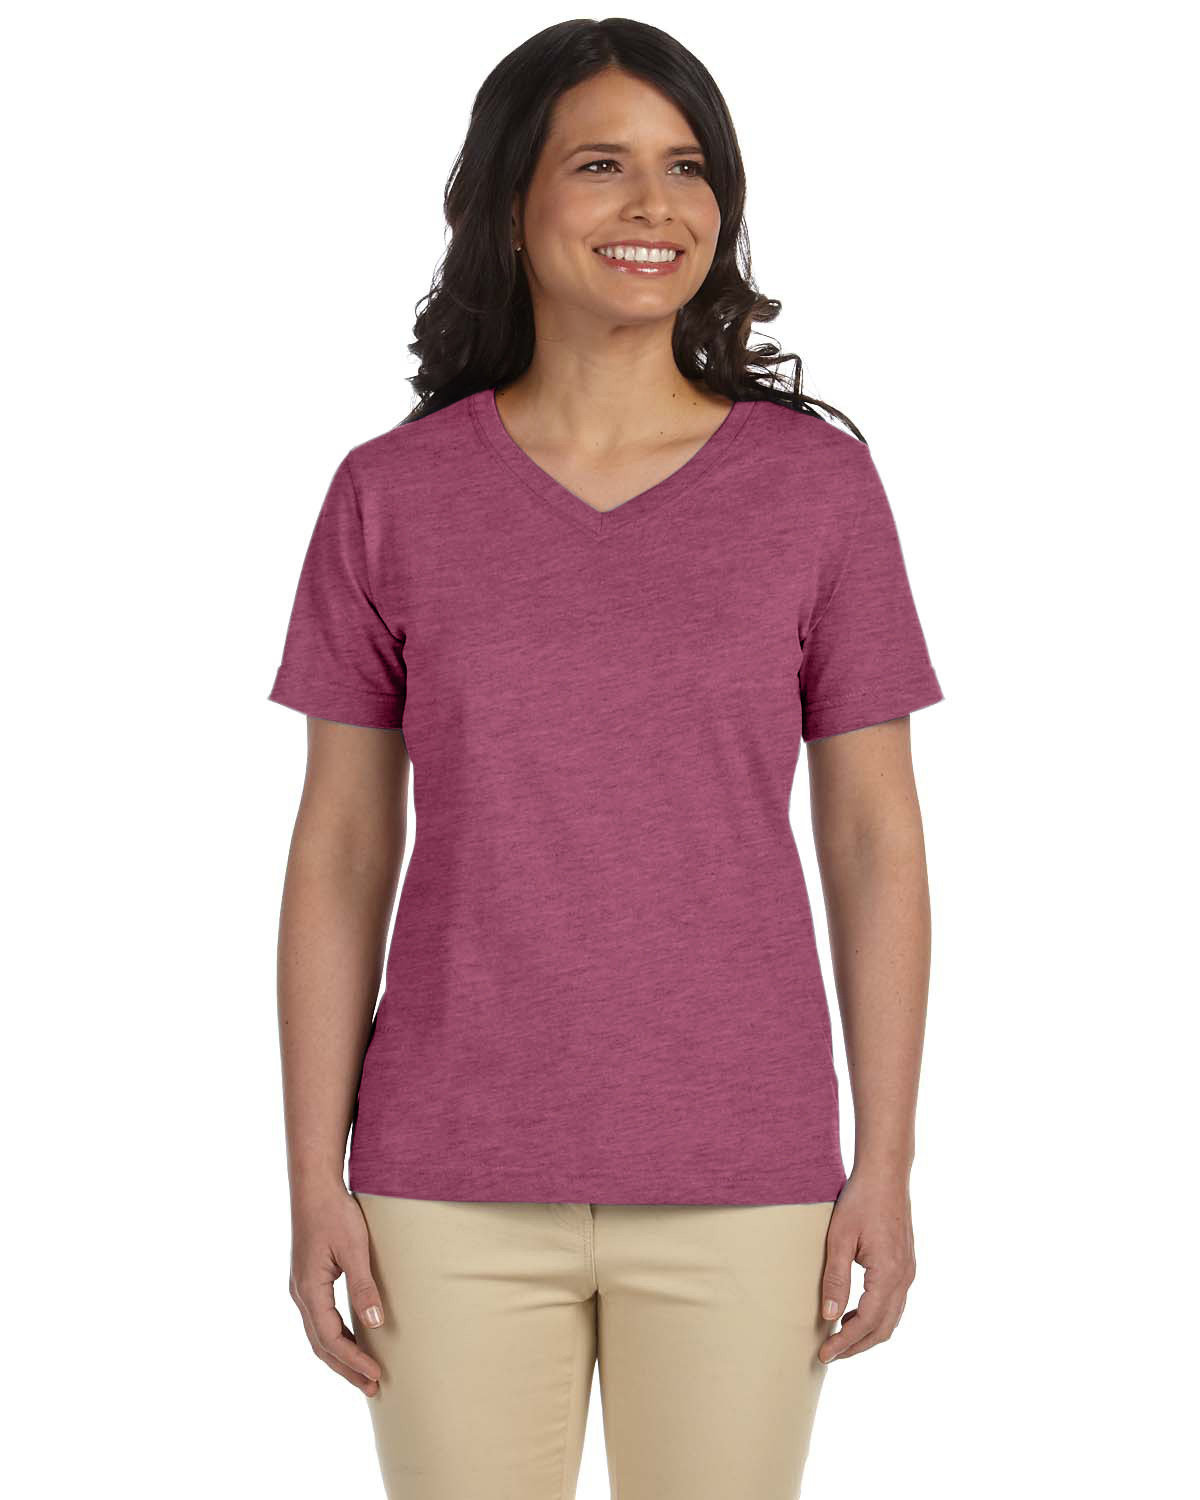 LAT Ladies' Premium Jersey V-Neck T-Shirt VINTAGE BURGUNDY